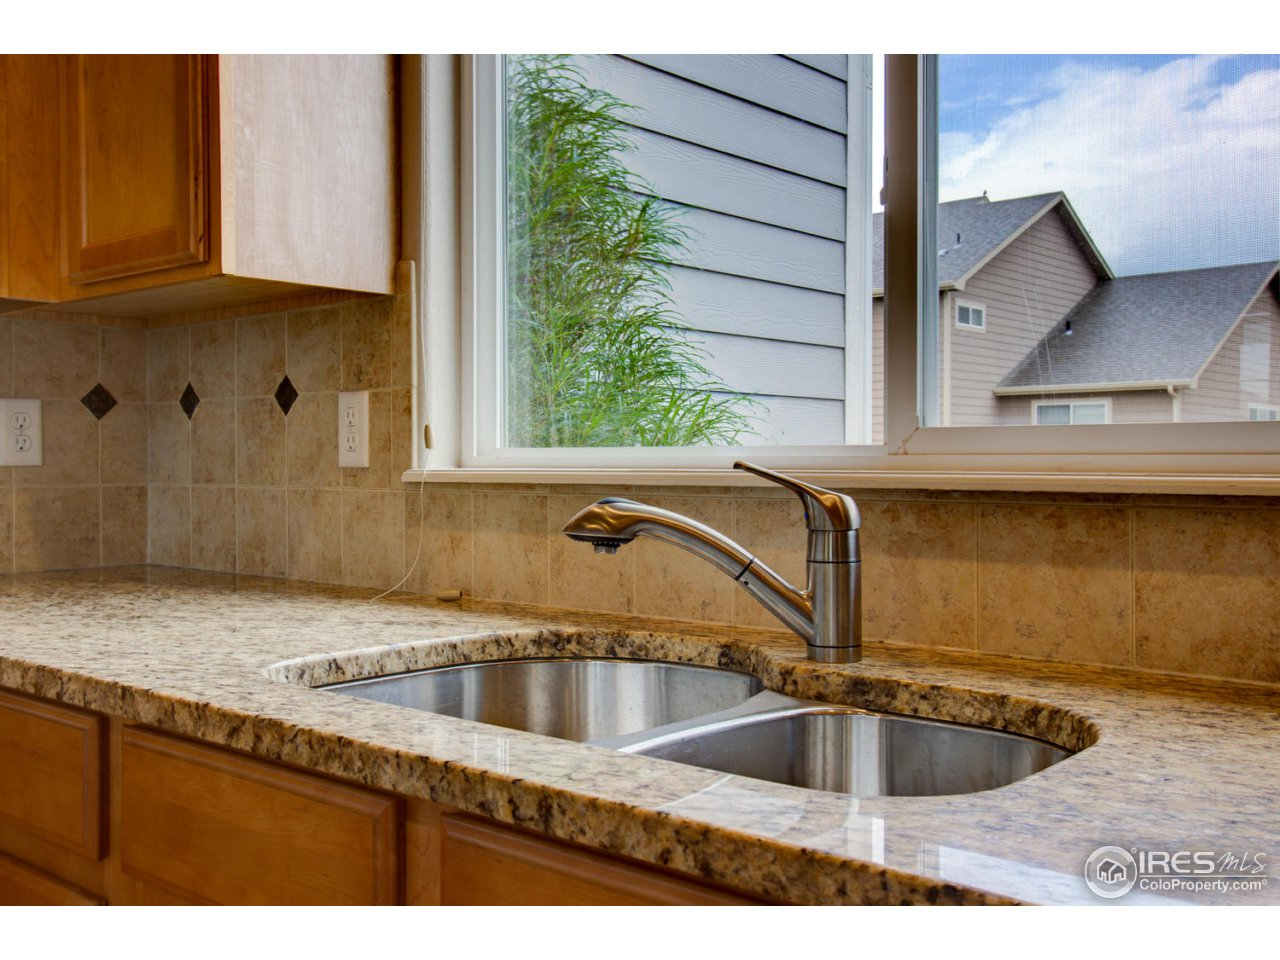 Undermount sink with newer fixtures